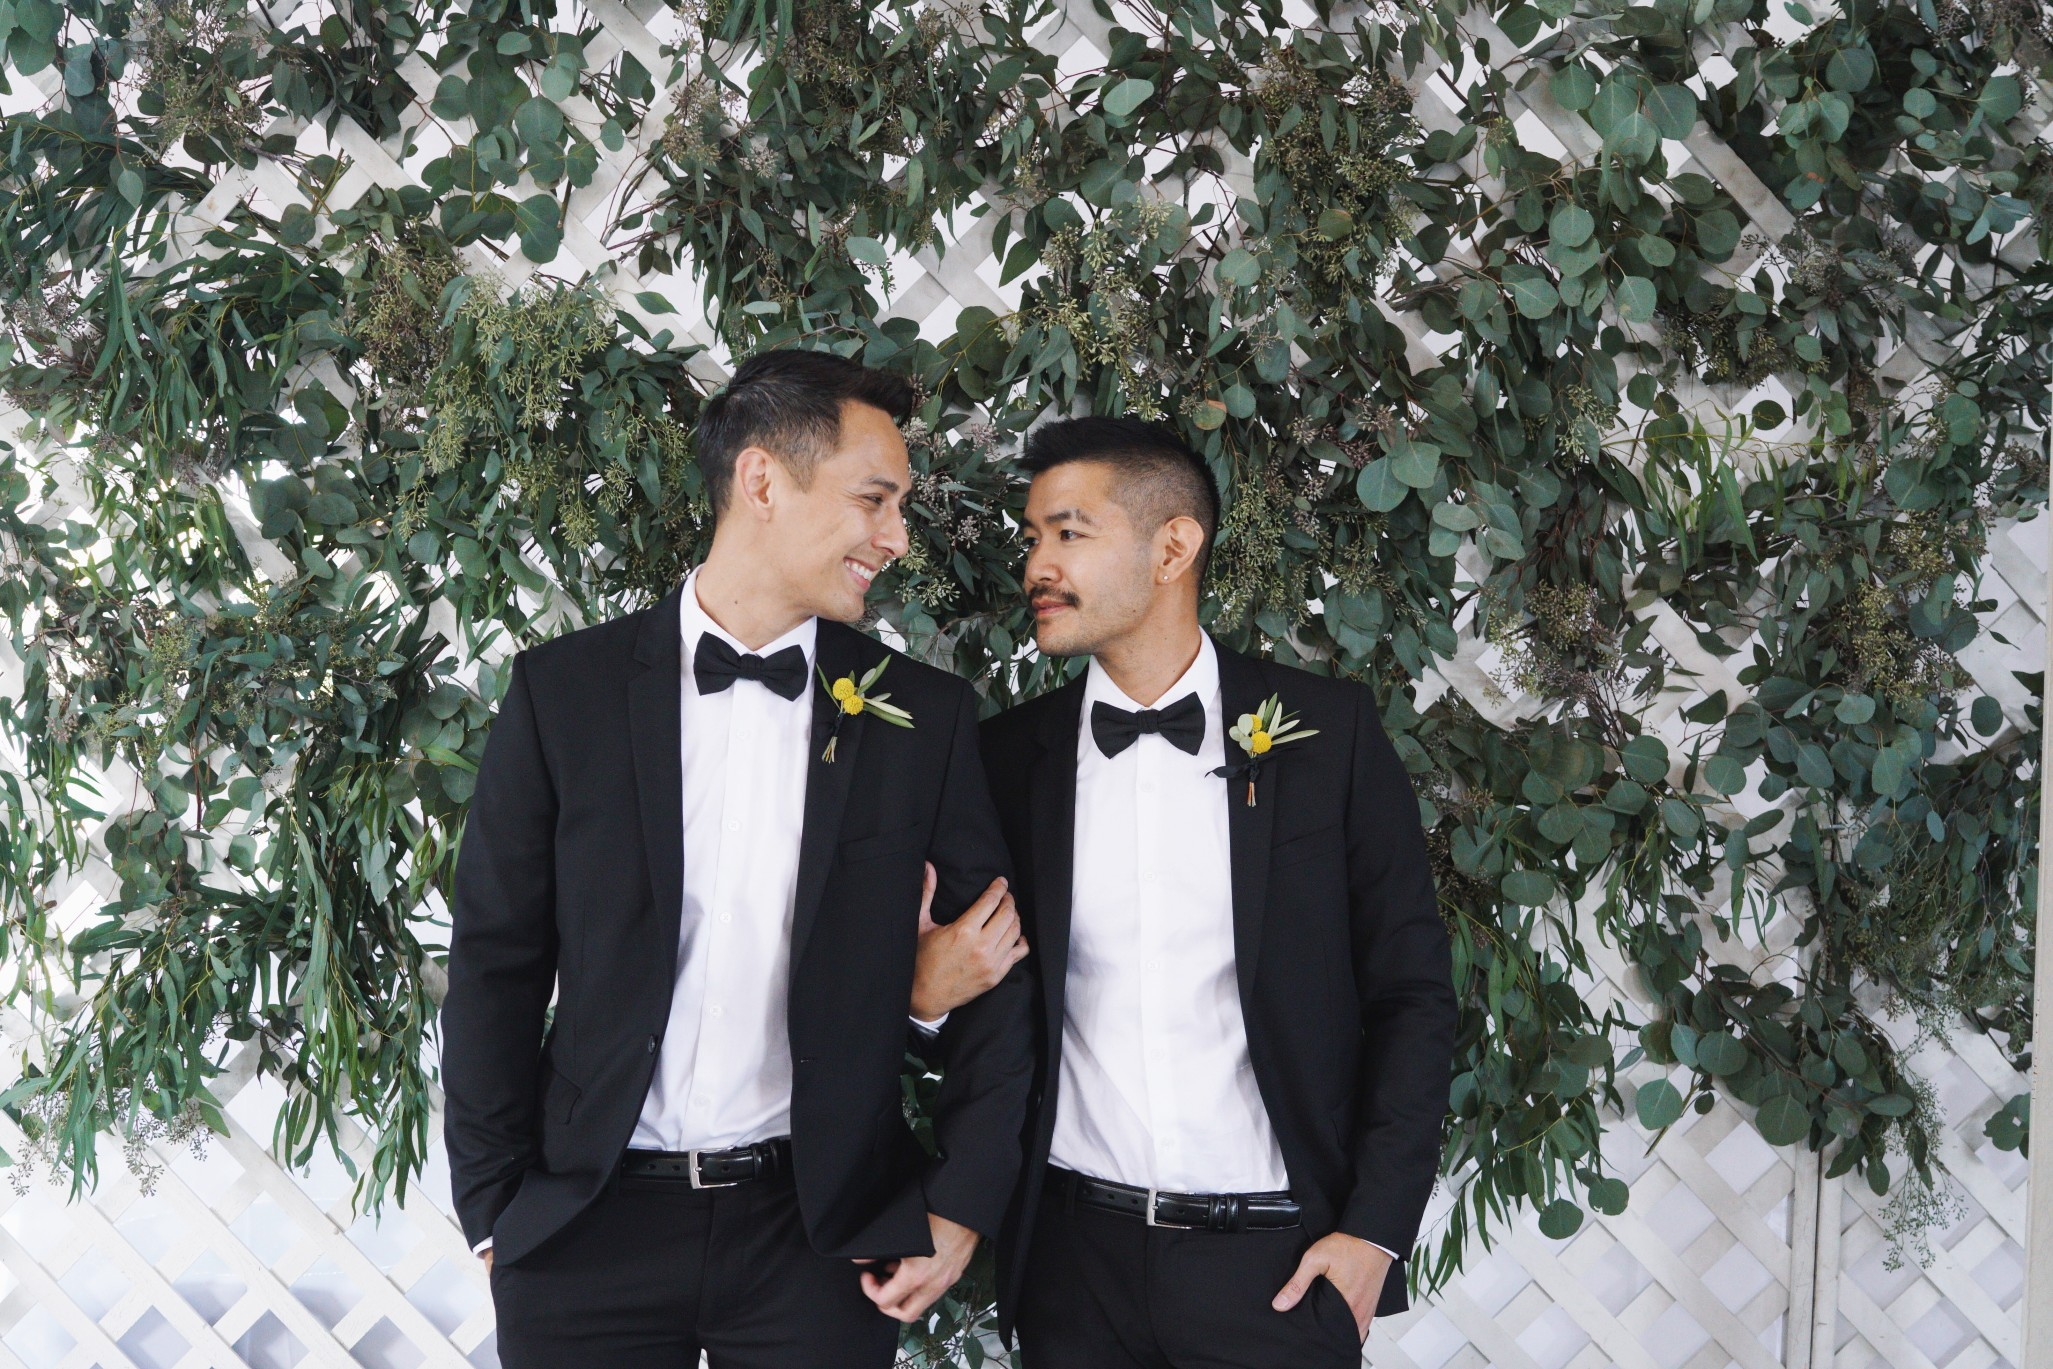 Wedding Gift Tax: Tax Tips For Same-Sex Couples